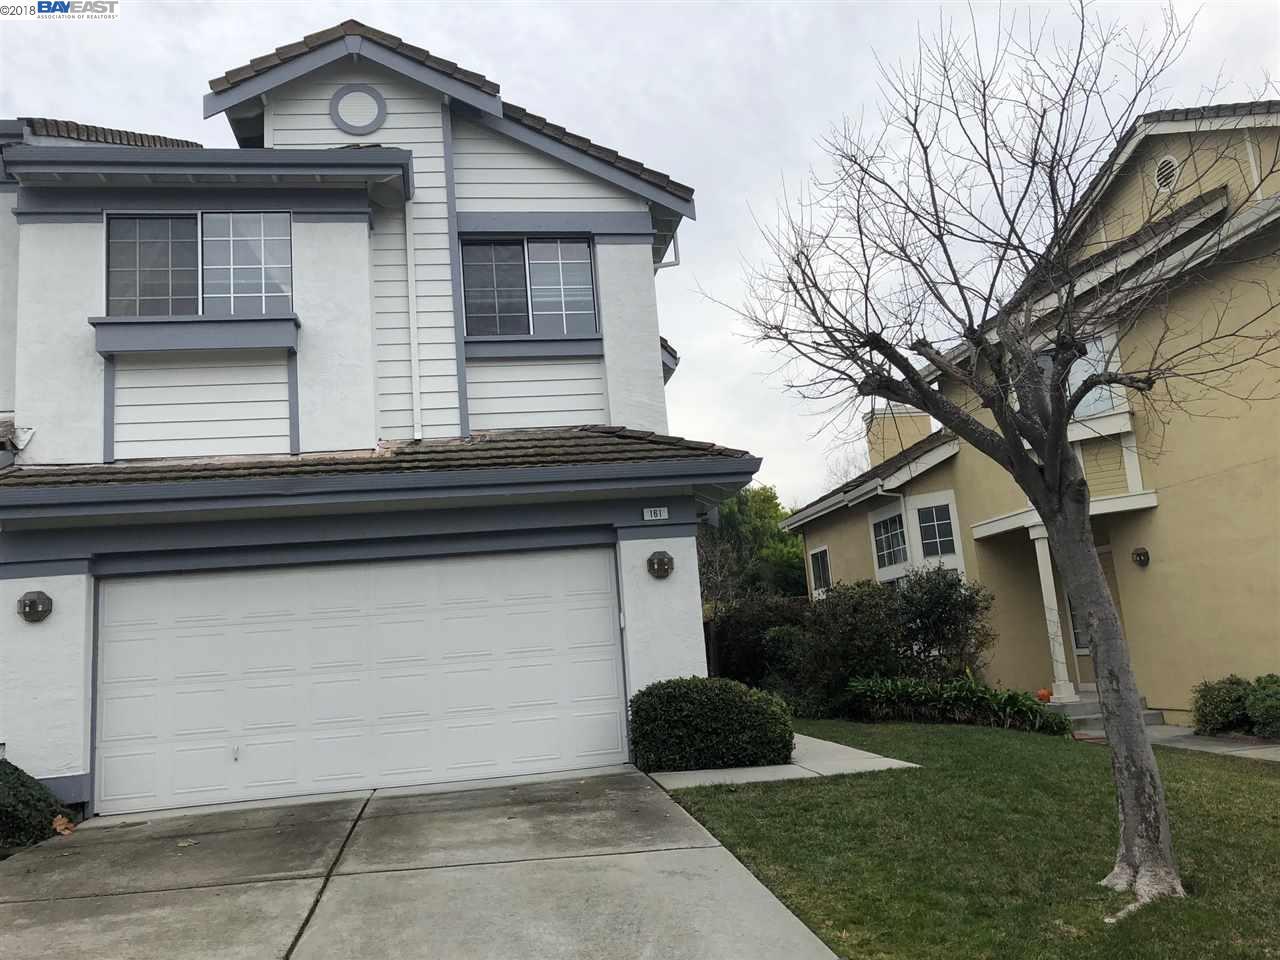 Single Family Home for Rent at 161 lynx Court 161 lynx Court Fremont, California 94539 United States